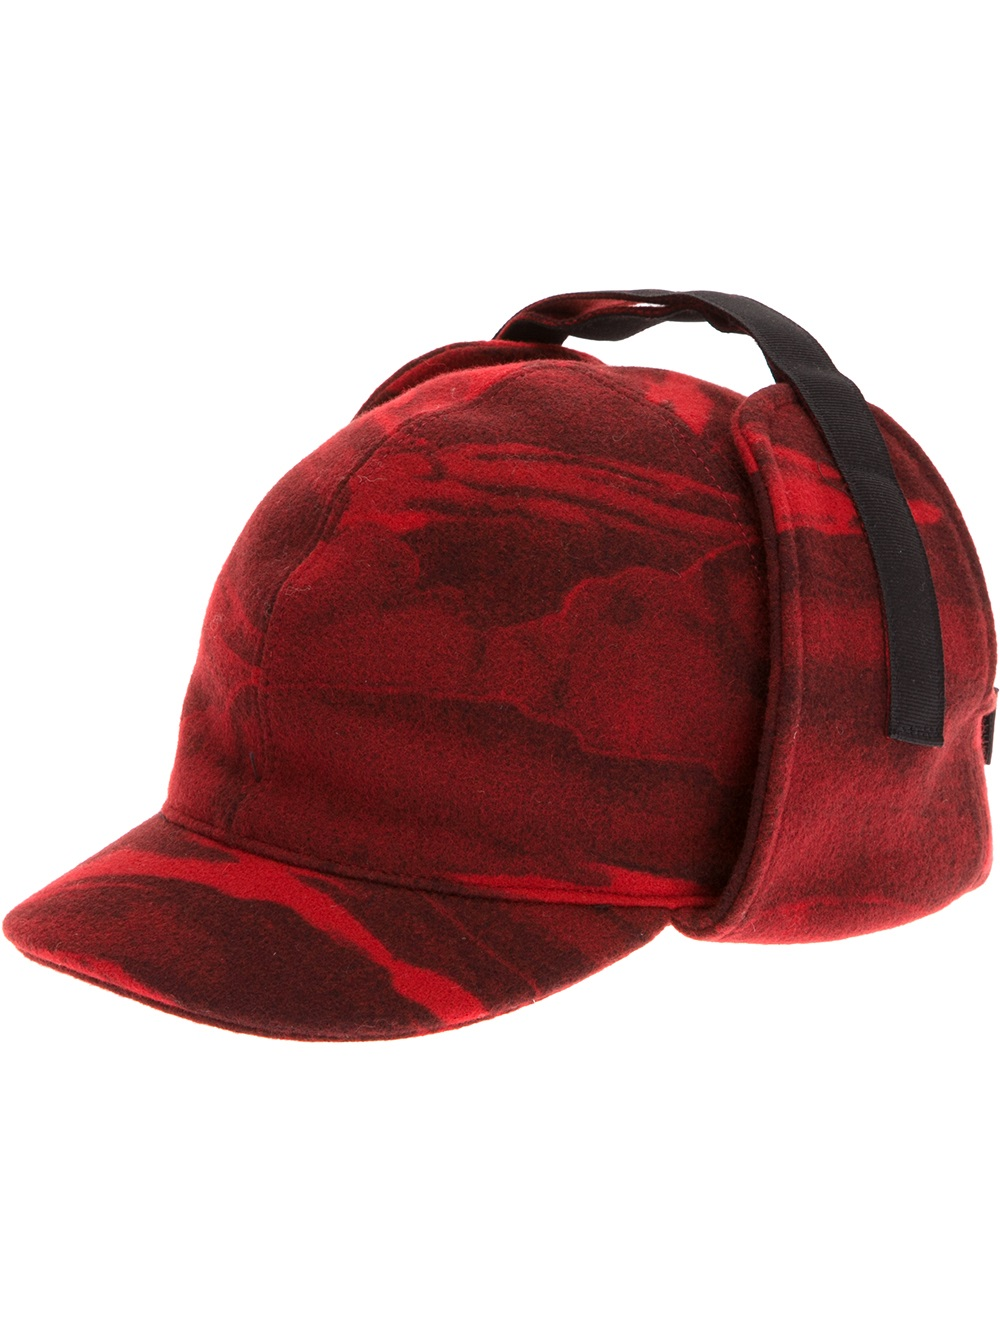 e7f6f9cae698d KENZO Ear Flap Cap in Red for Men - Lyst